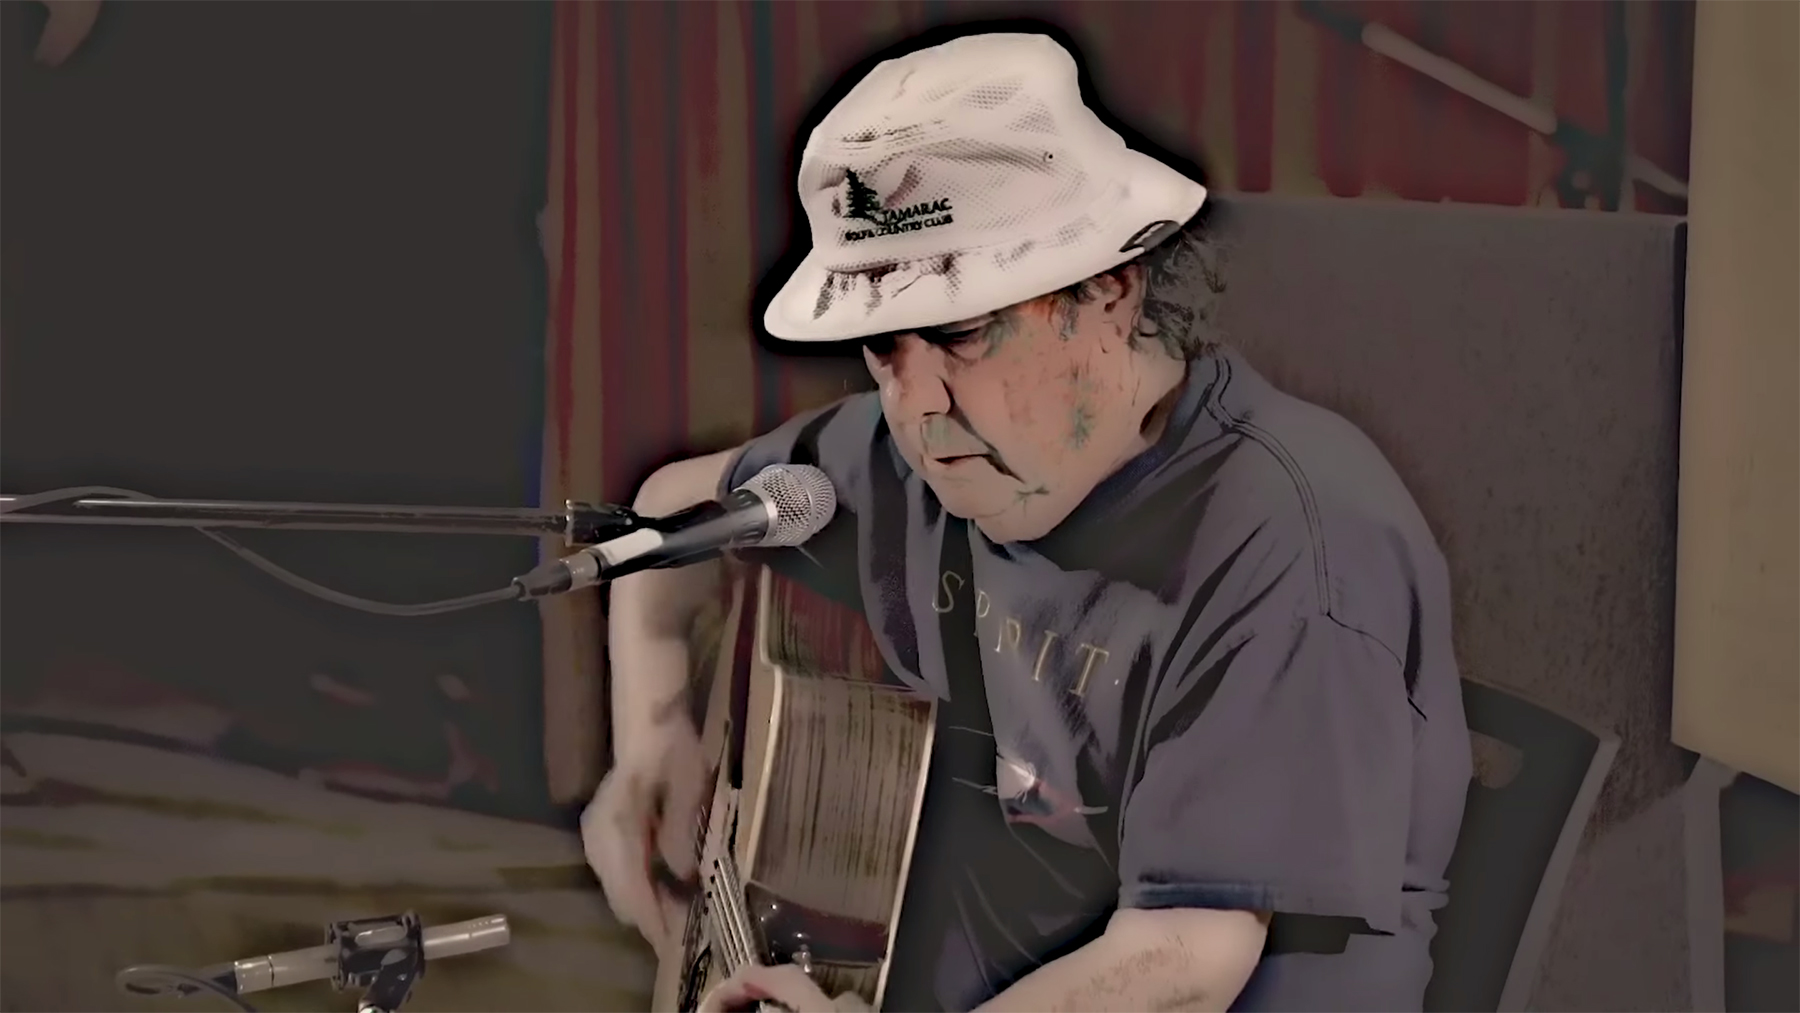 neil young s older brother bob young releases first song at age 78 rolling stone neil young s older brother bob young